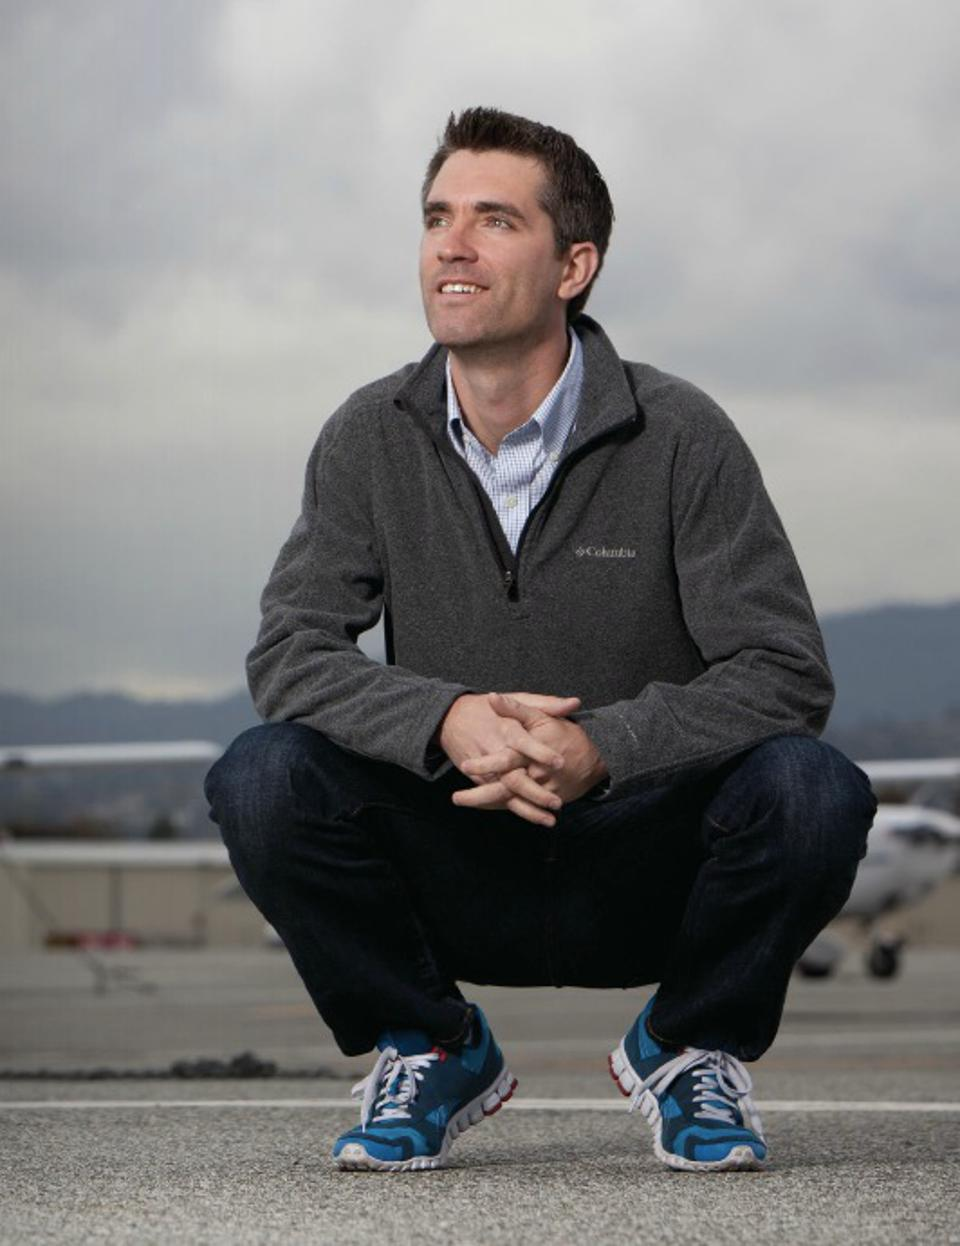 A picture of Wade Eyerly, Degree Insurance CEO and co-founder